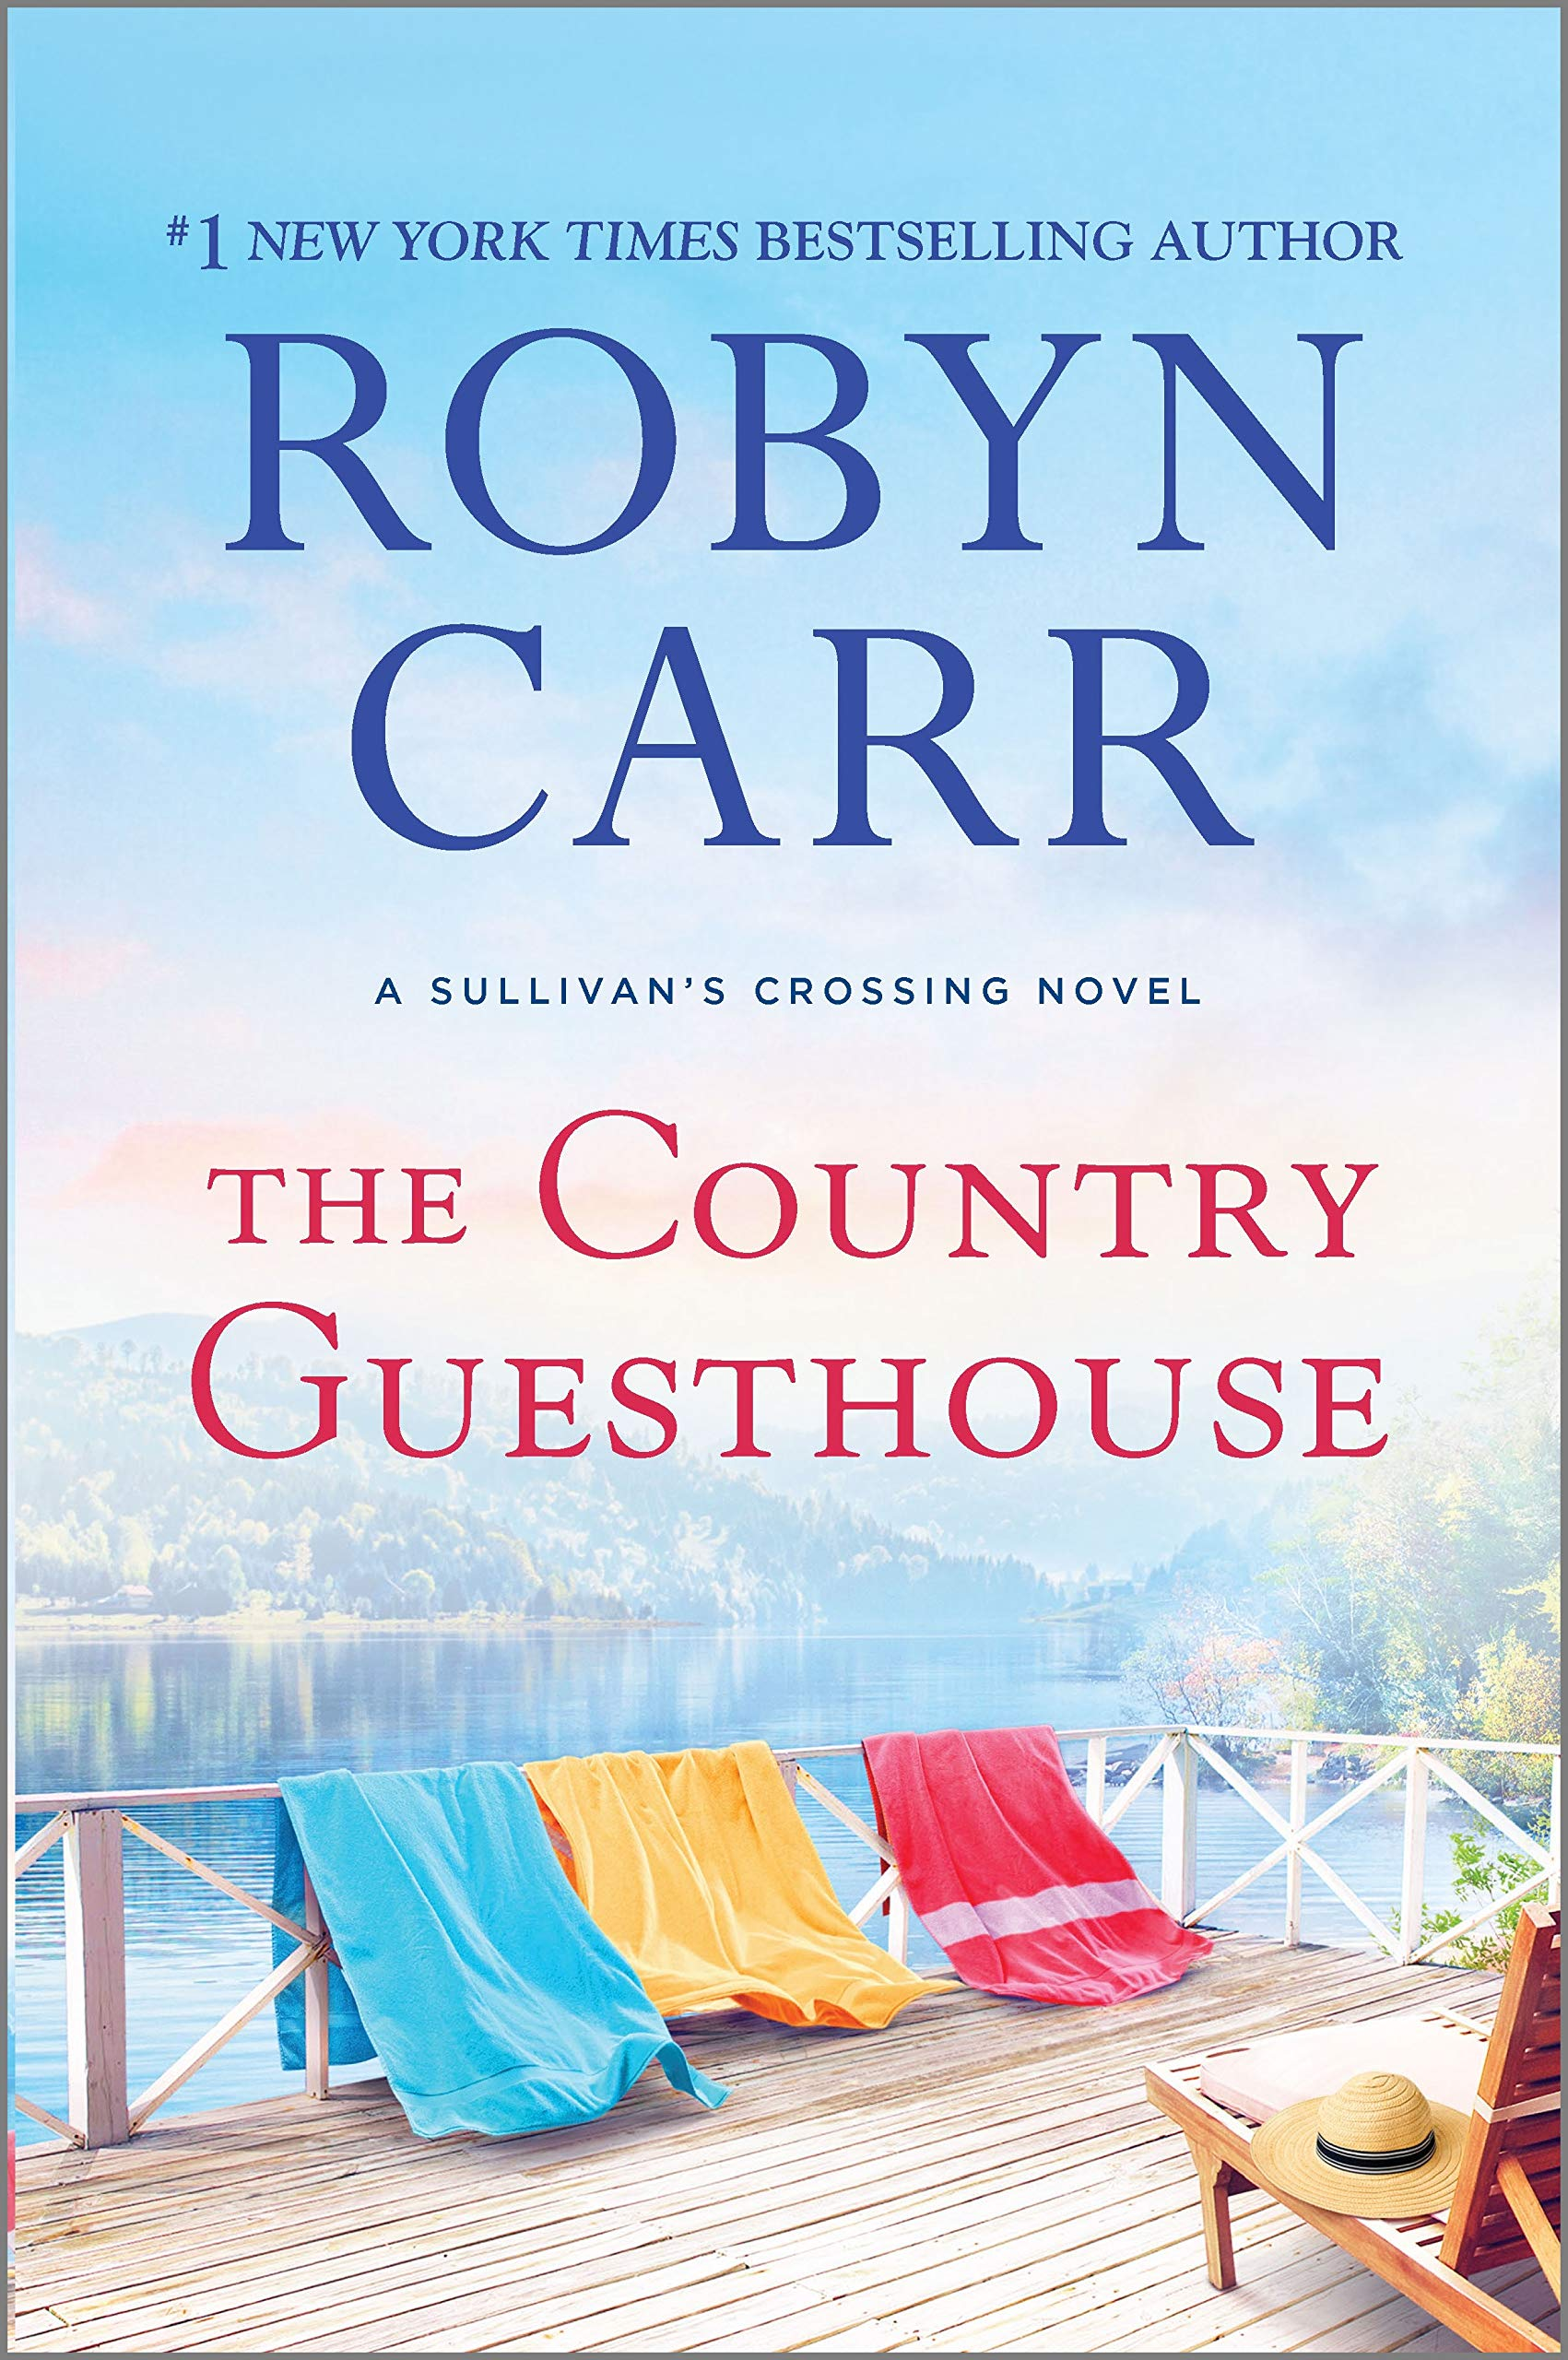 The Country Guesthouse: A Sullivan's Crossing Novel by MIRA